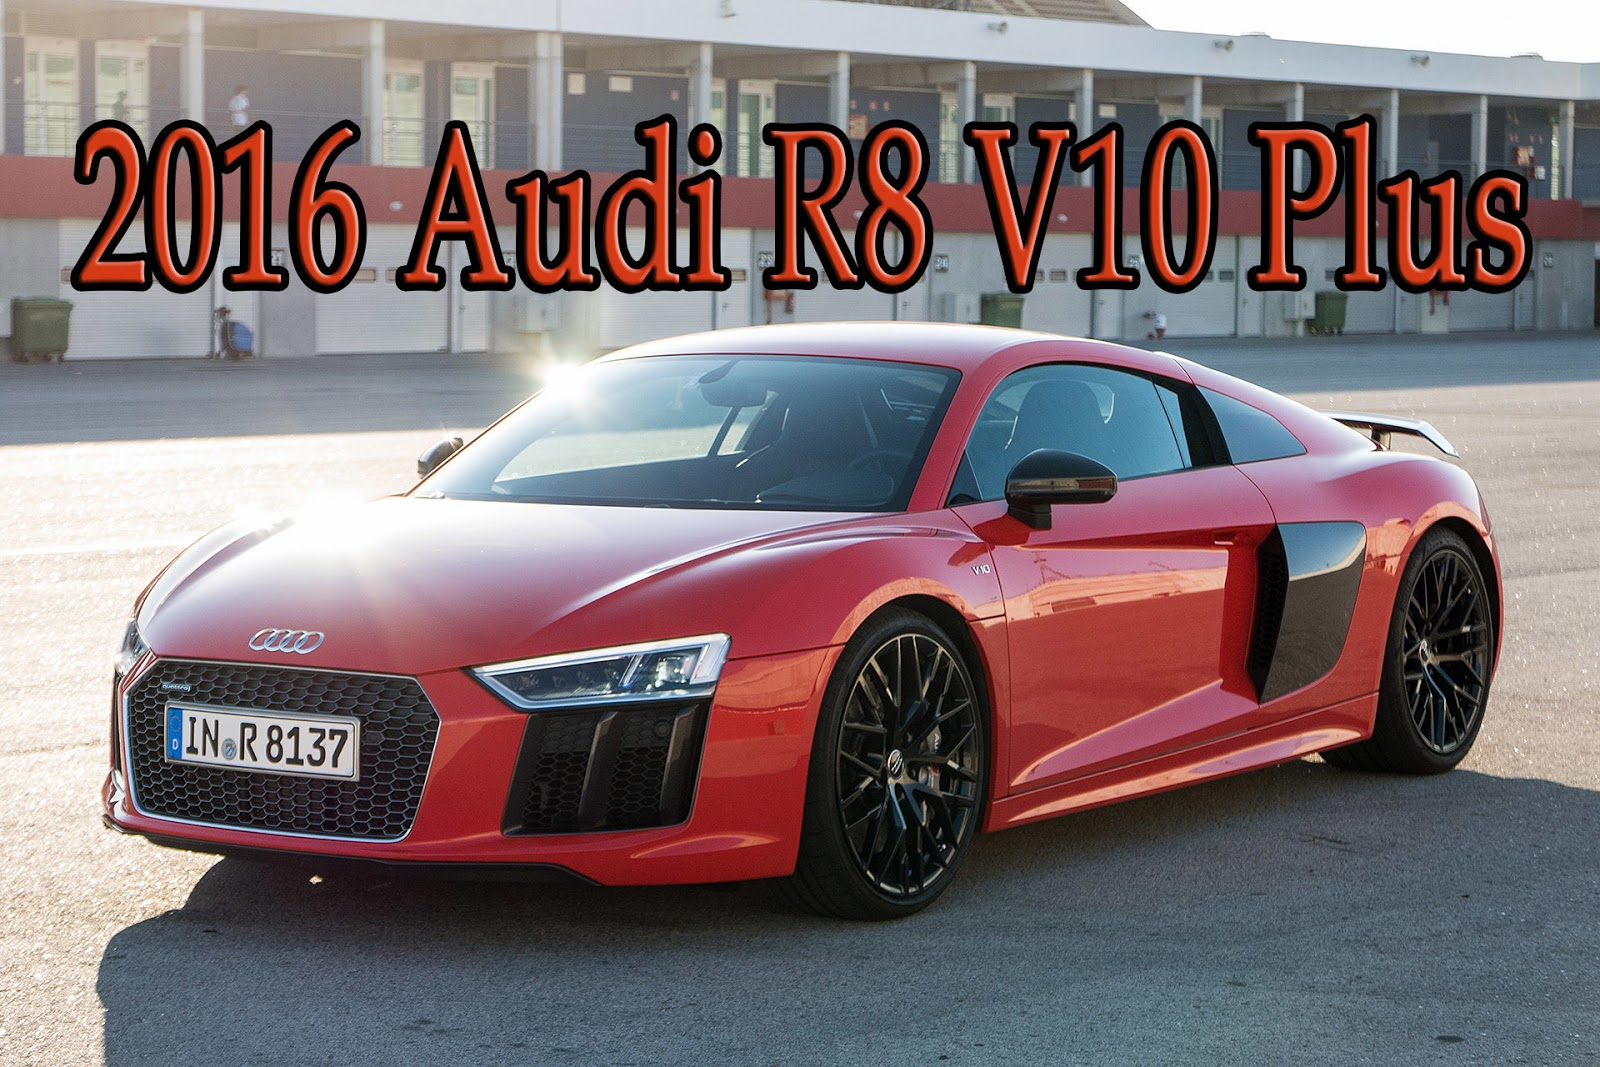 2016 audi r8 v10 plus top speed price in india otomotif news. Black Bedroom Furniture Sets. Home Design Ideas